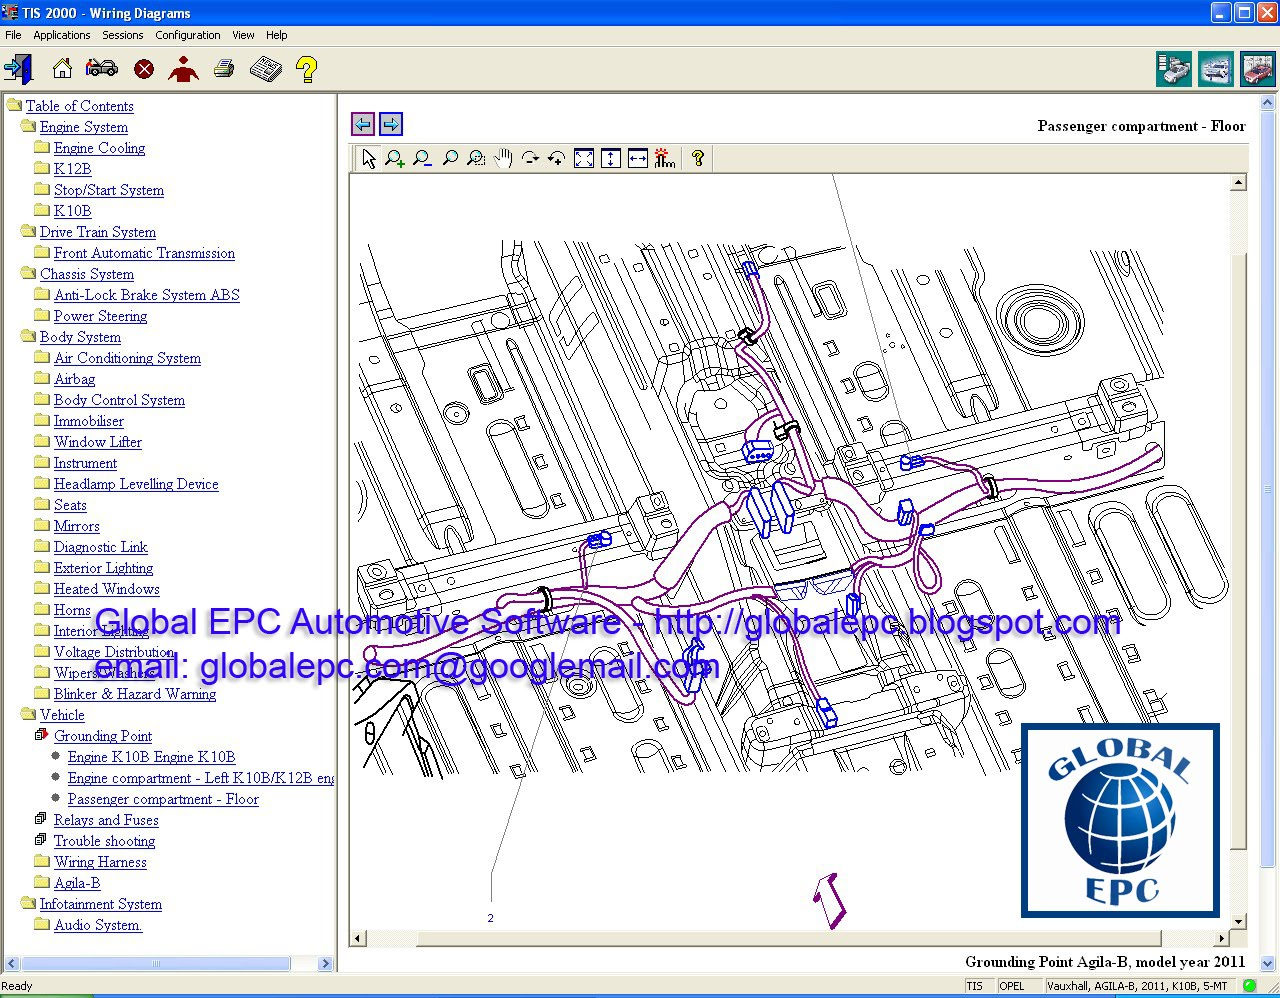 small resolution of global epc automotive software opel vauxhall holden tis2000 tisopel vauxhall holden tis2000 tis 115 0 e